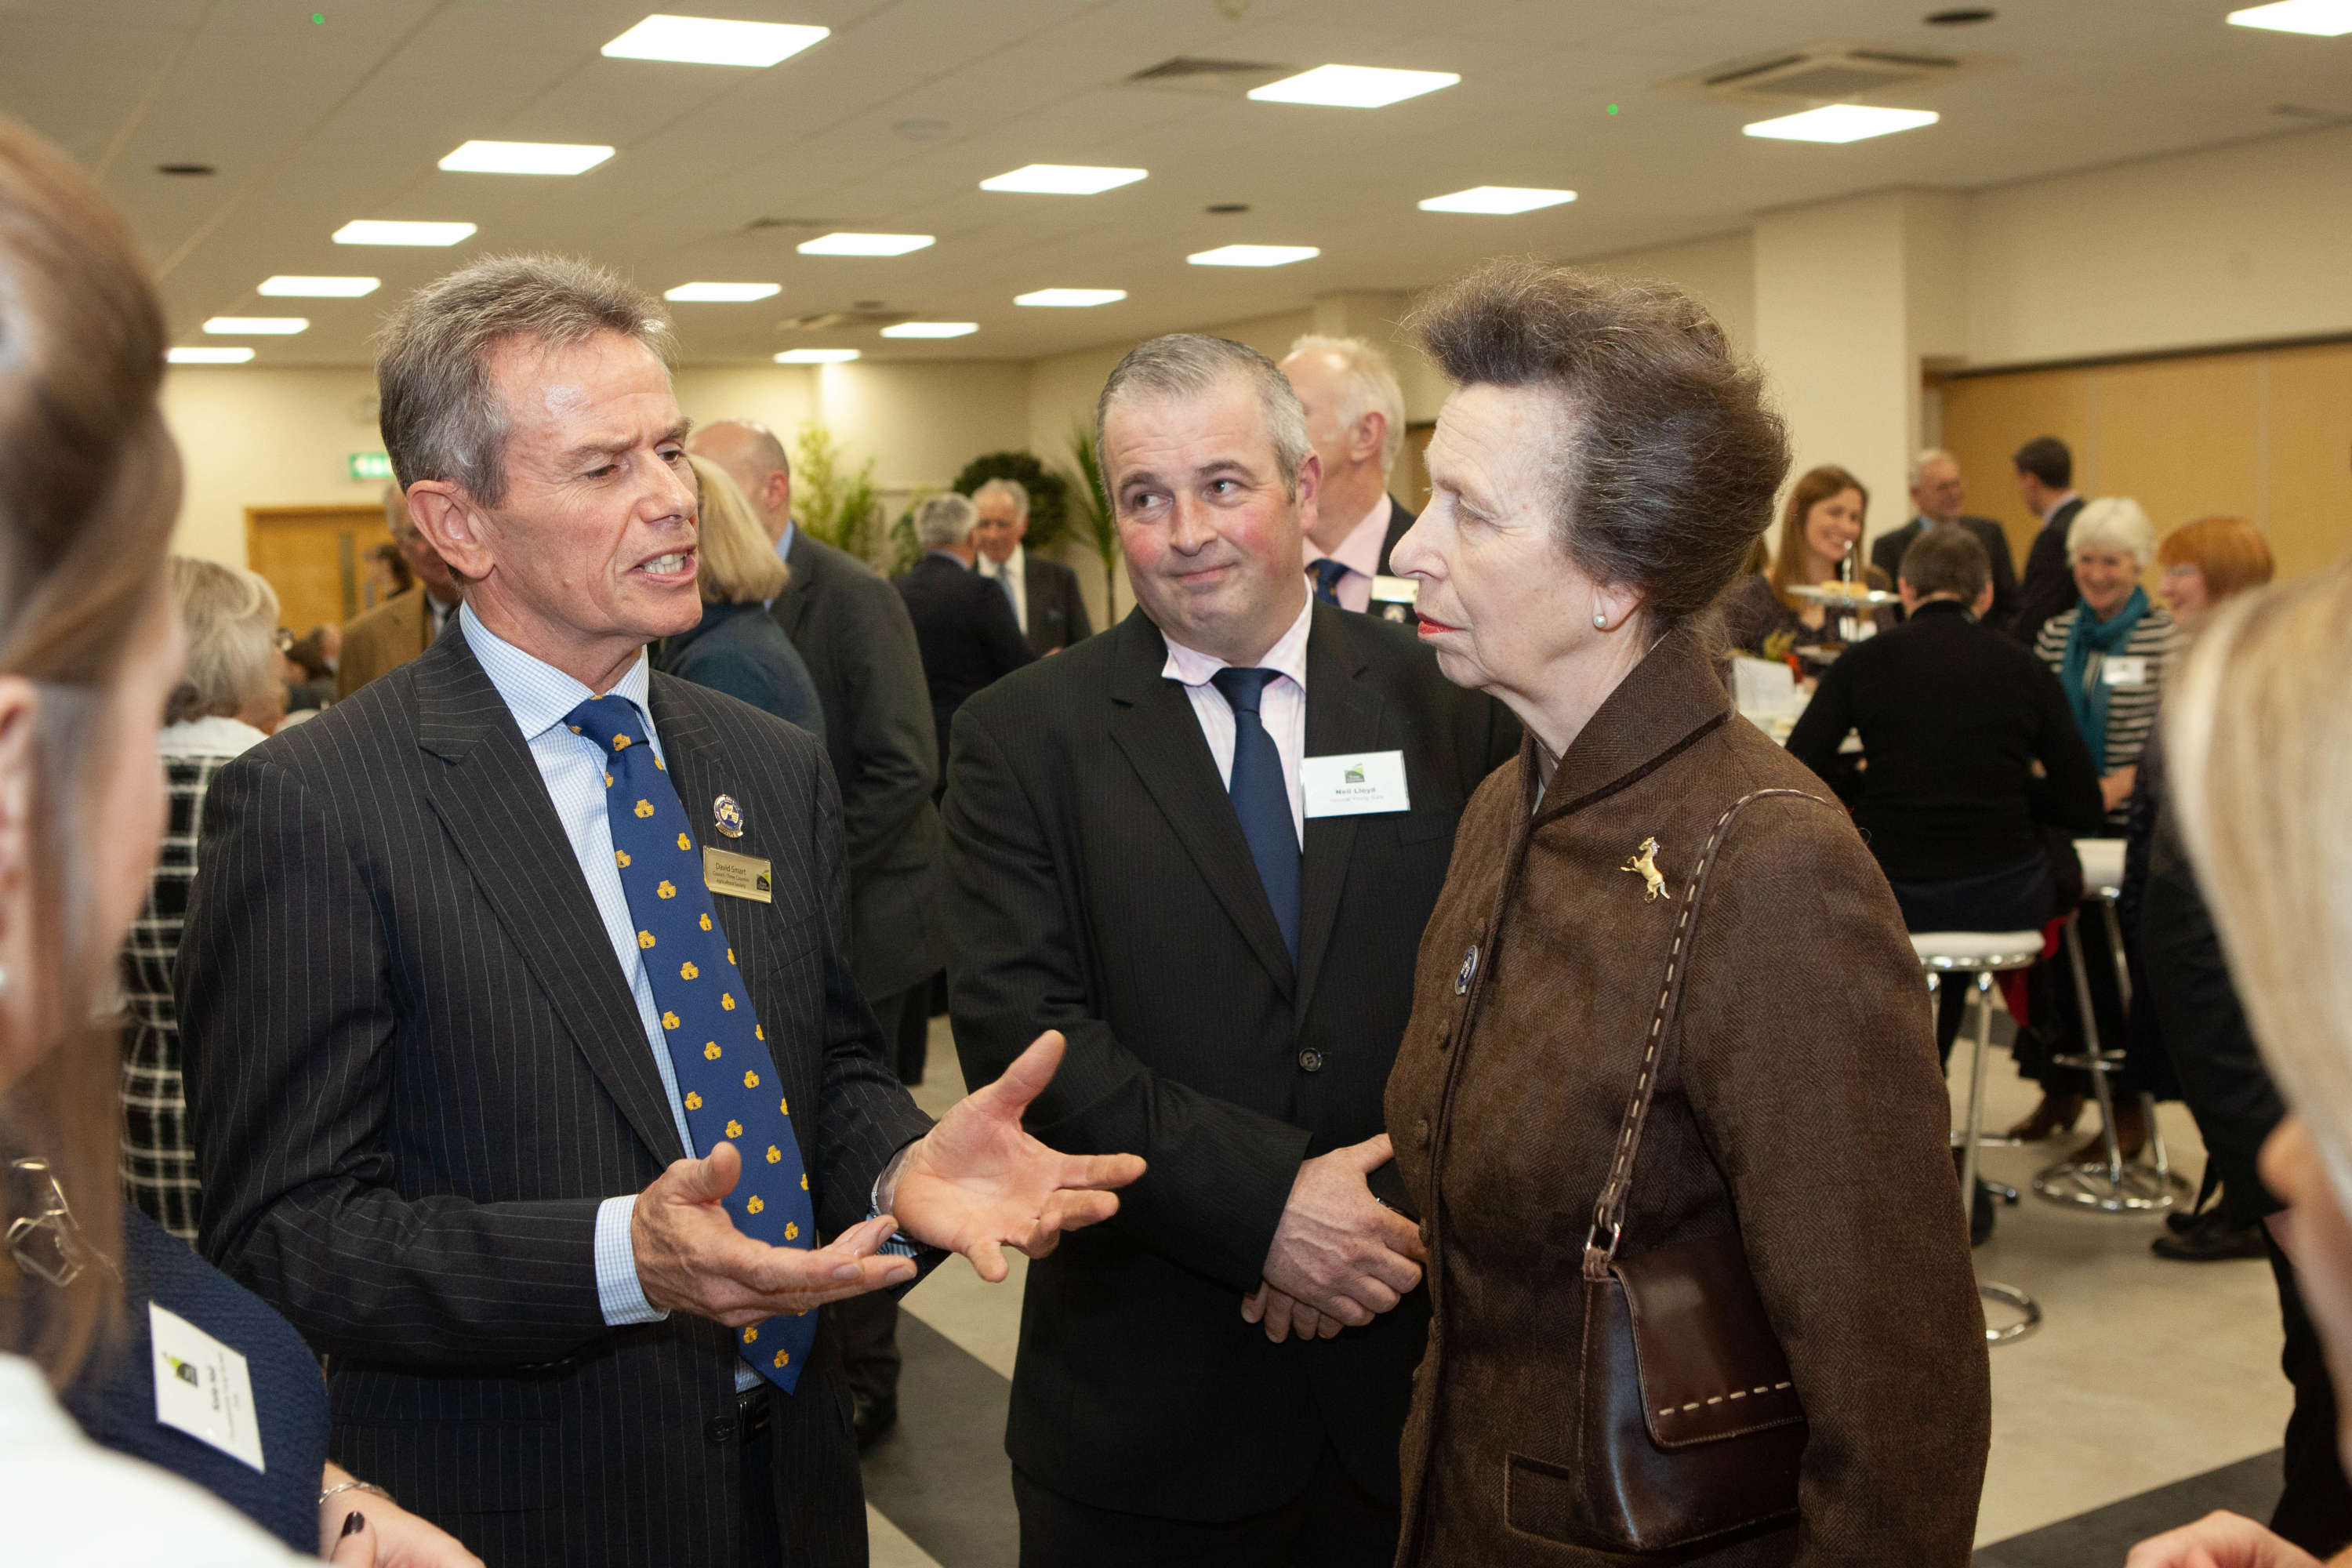 HRH The Princess Royal meeting David Smart, Council Member Three Counties.jpg